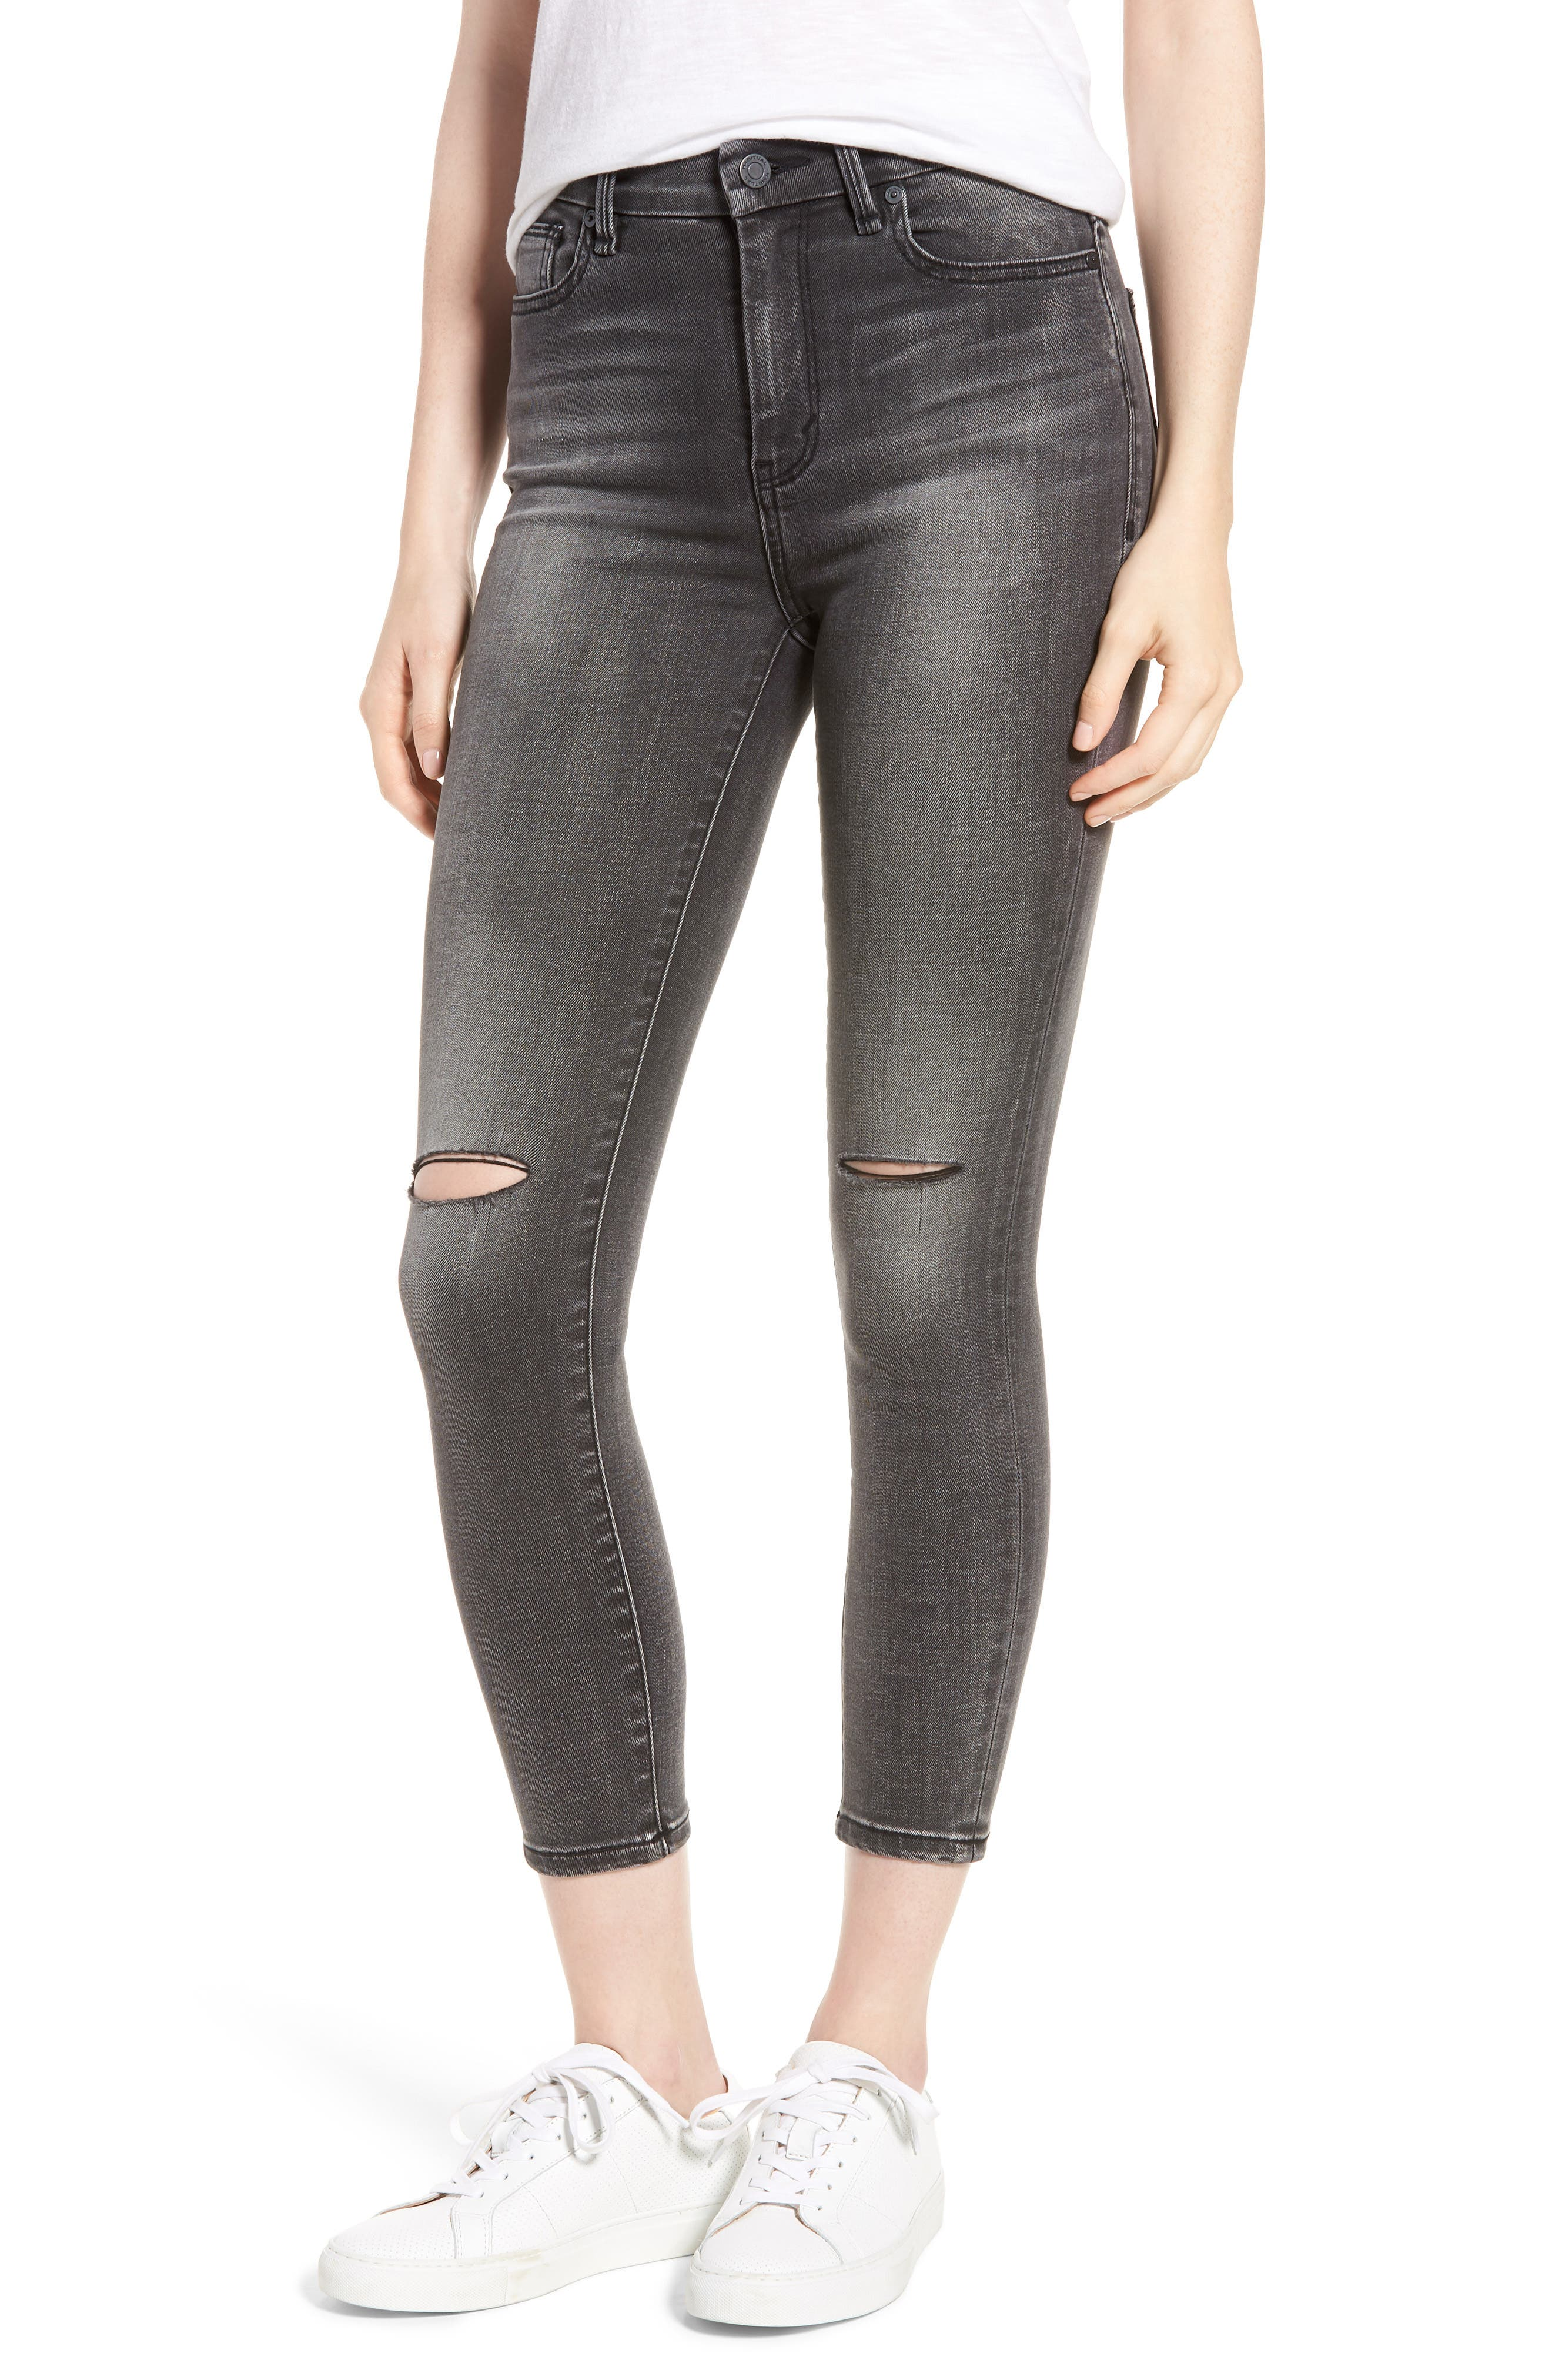 Cressa High Rise Ankle Skinny Jeans,                         Main,                         color, Obsidian